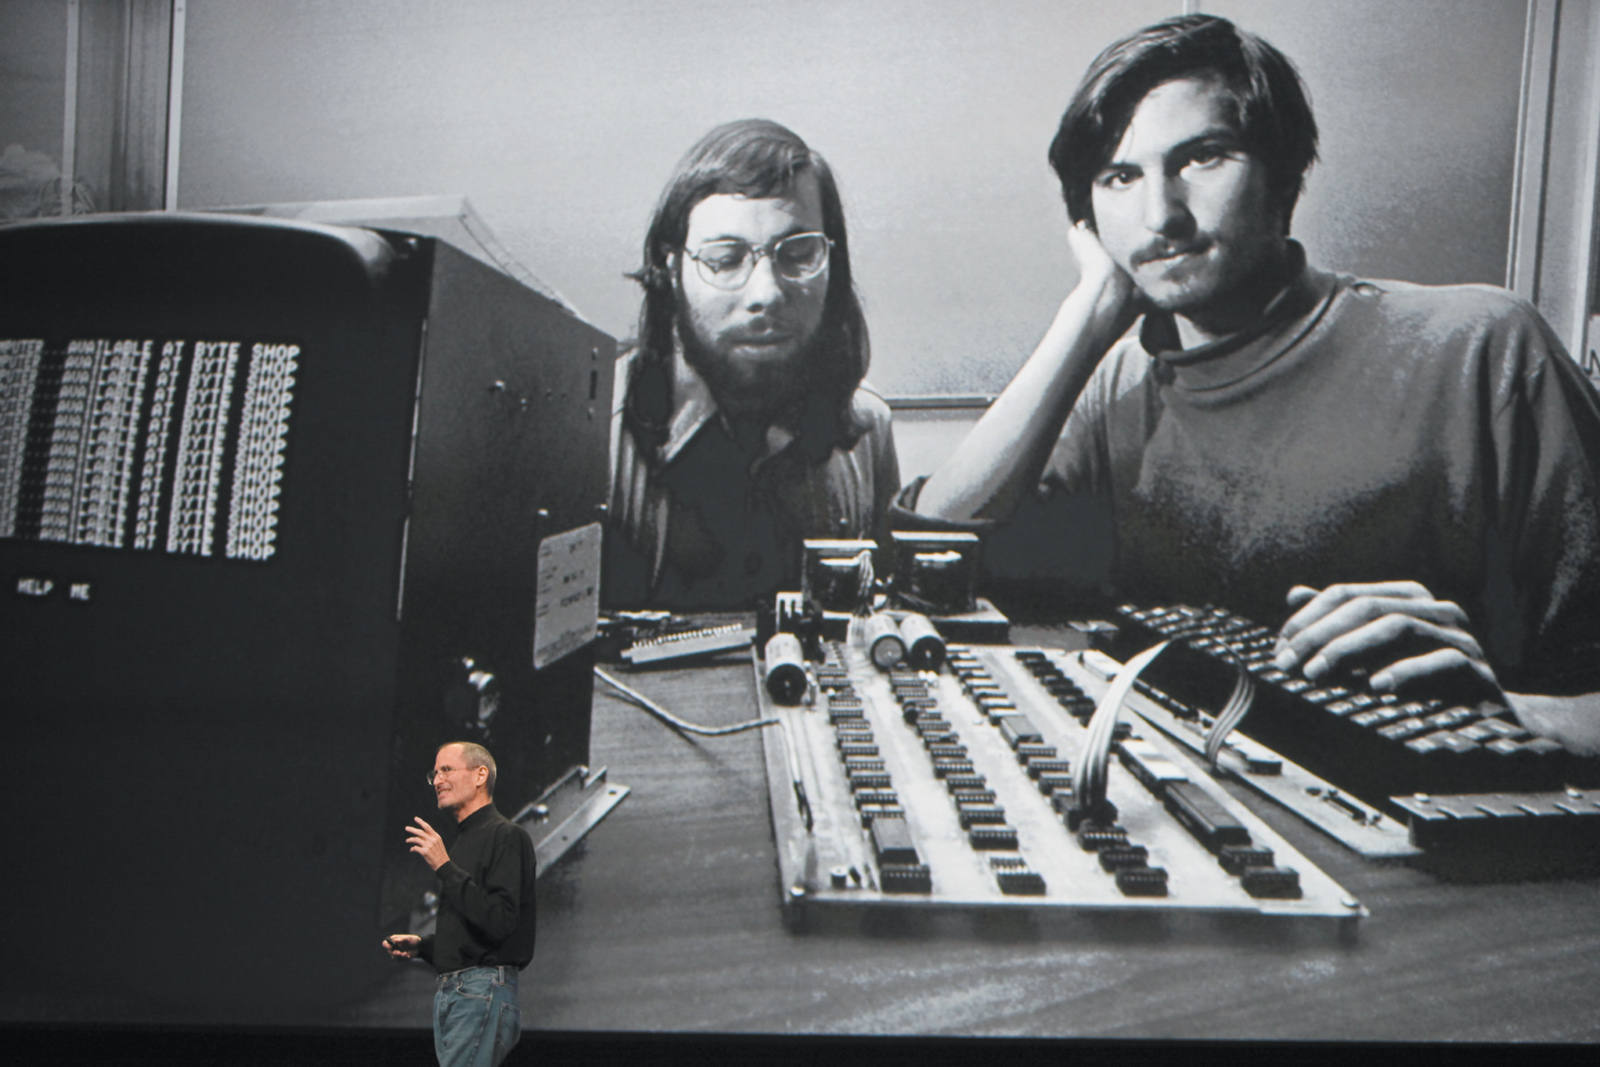 Steve Jobs speaking at a conference in San Francisco in front of a photograph of himself and Apple cofounder Steve Wozniak, 2010